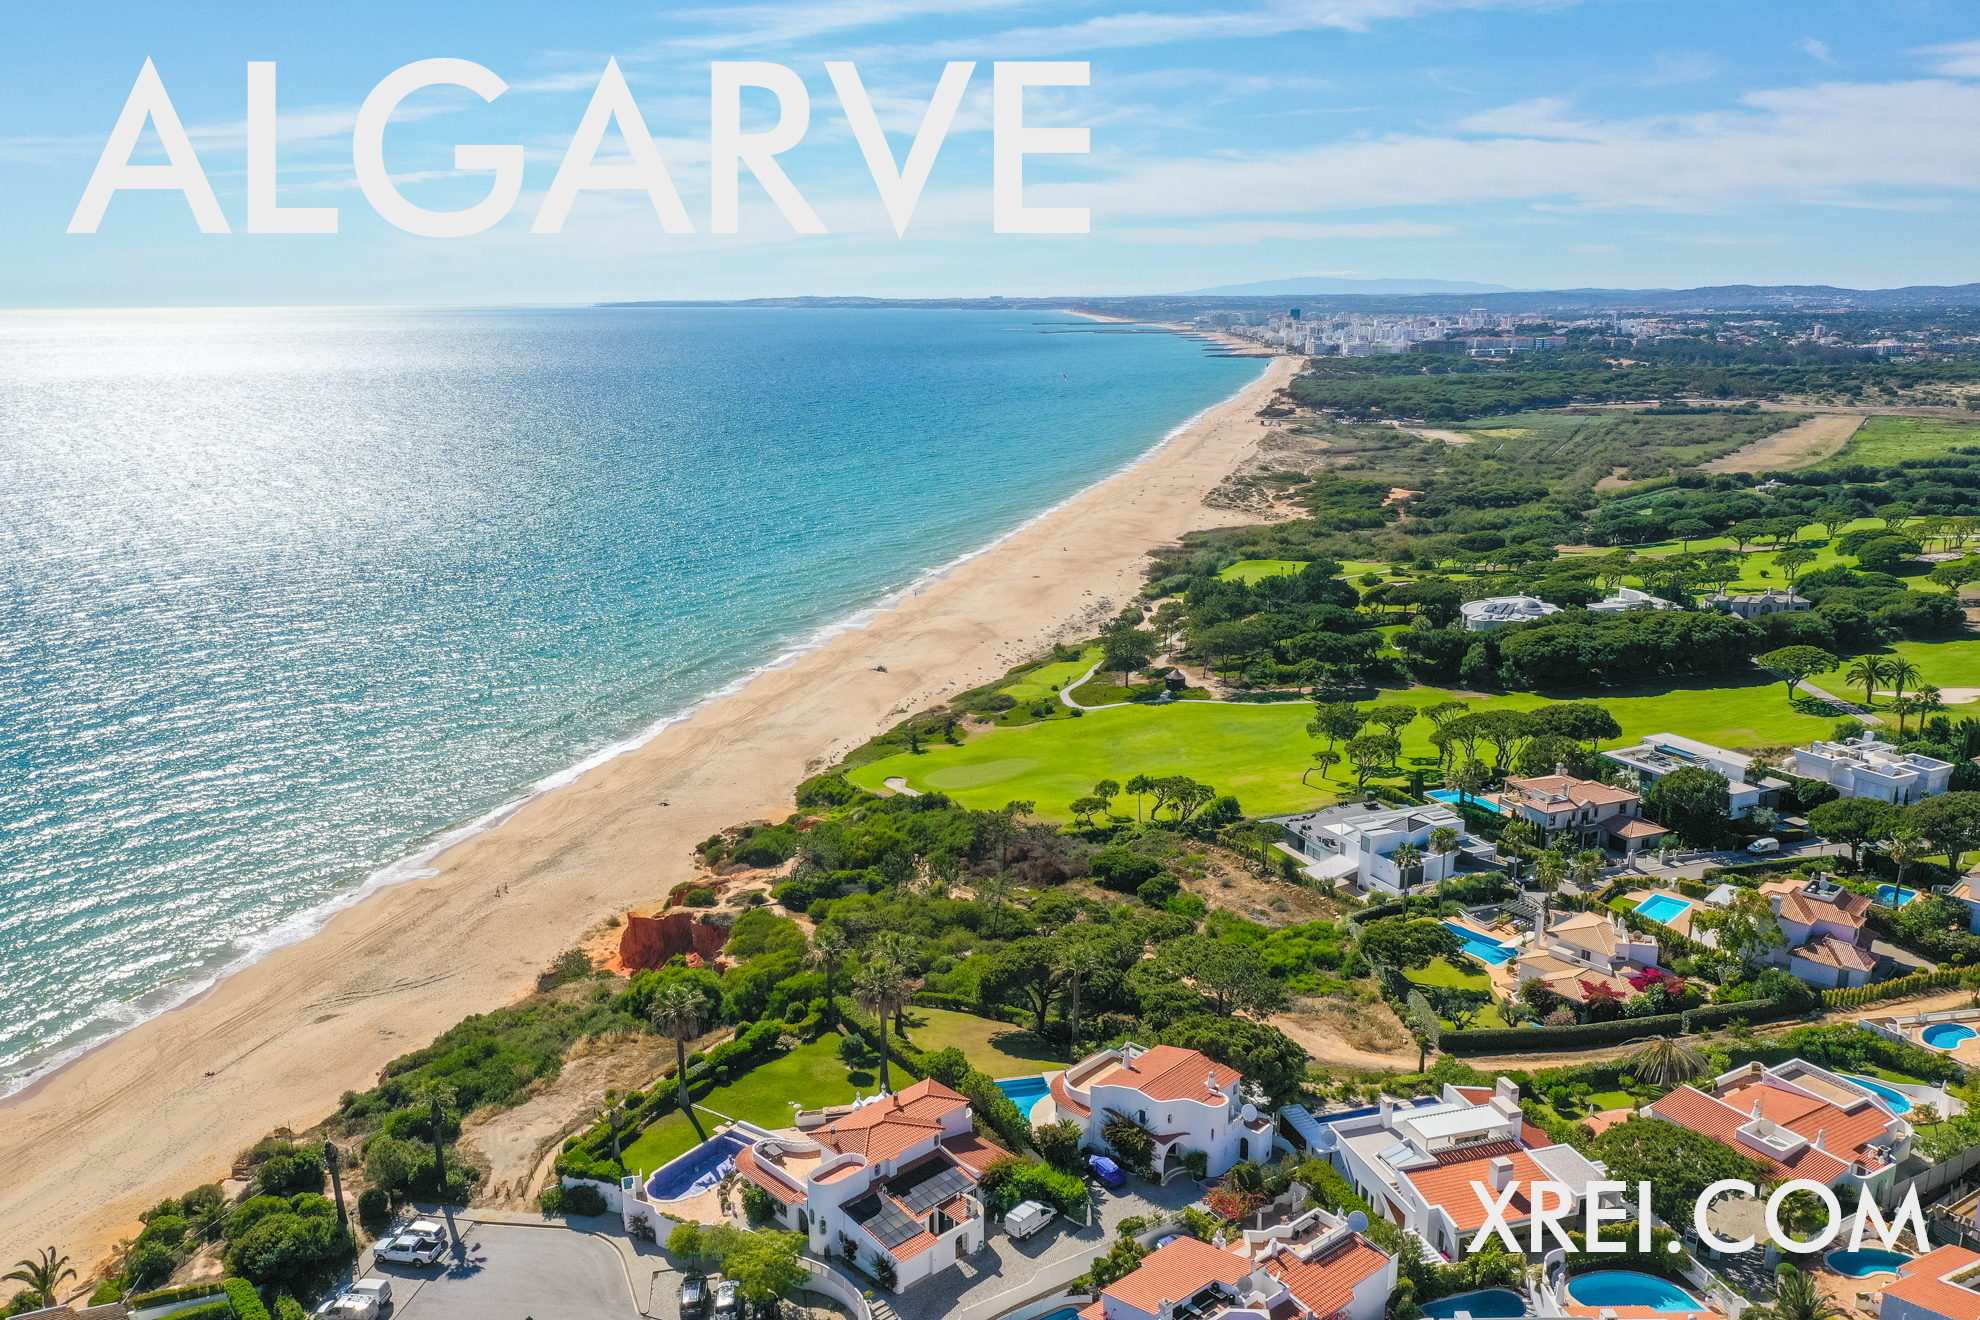 Algarve is the southern region of Portugal, with stable economic growth and good quality of life, known for its beaches, golf, tradition and asymmetry between fishing and agricultural villages ...